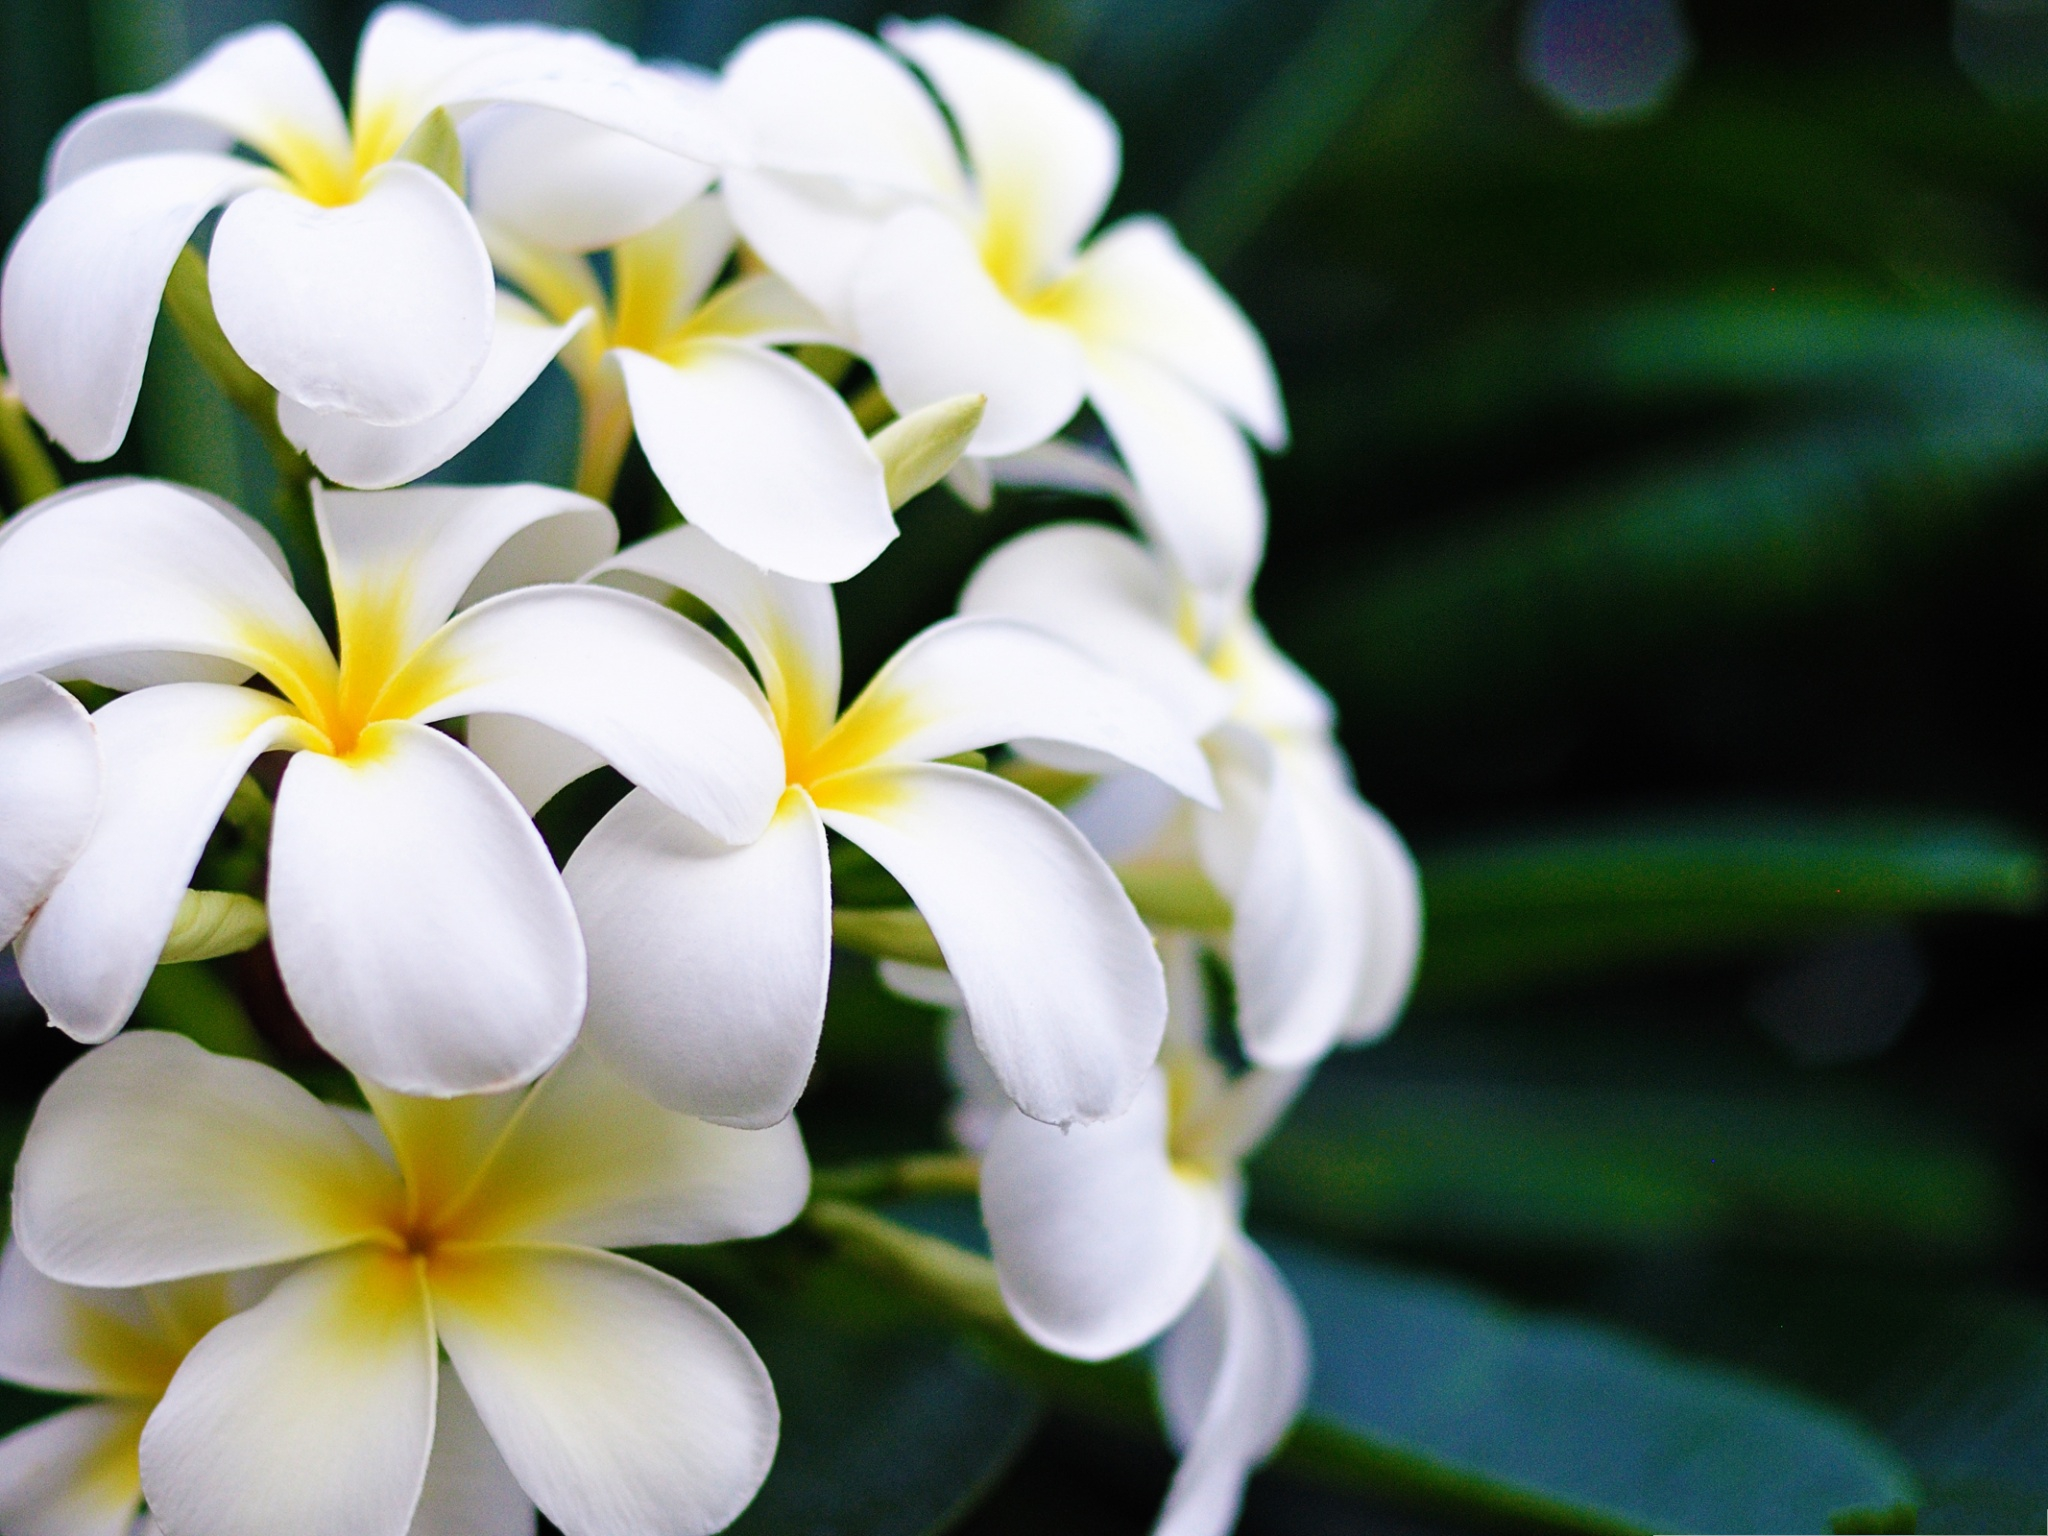 click to free download the wallpaper--Hawaii Flowers Image, White and Small Flowers in Bloom, Amazing Look 2048X1536 free wallpaper download